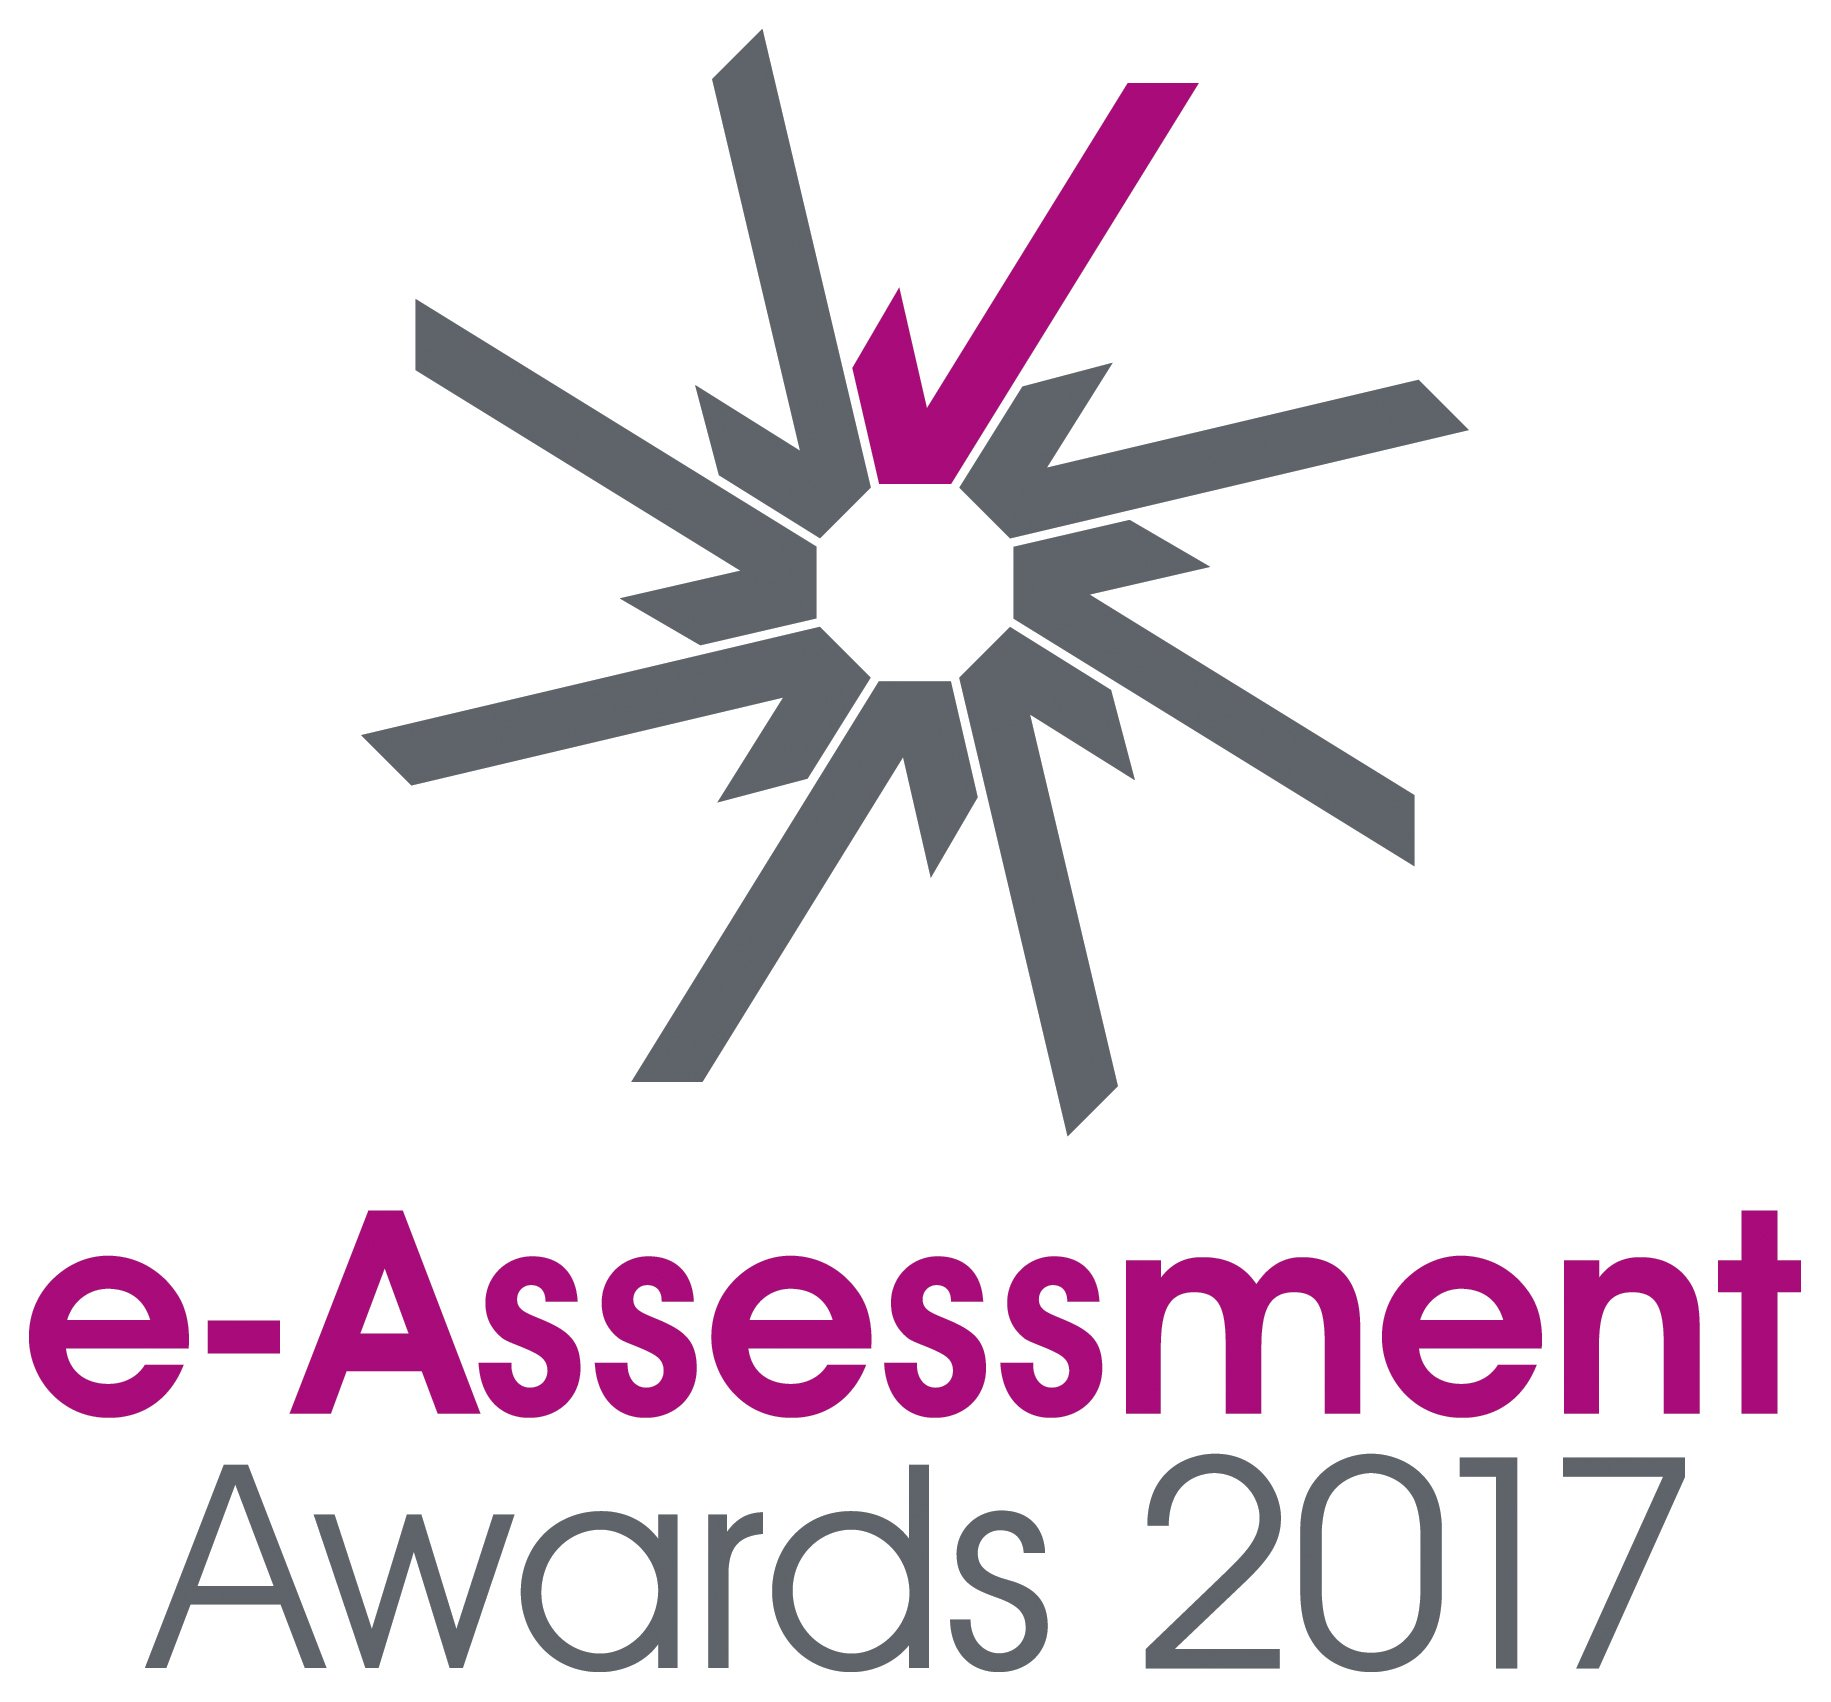 Brand new international e-Assessment Awards programme launched